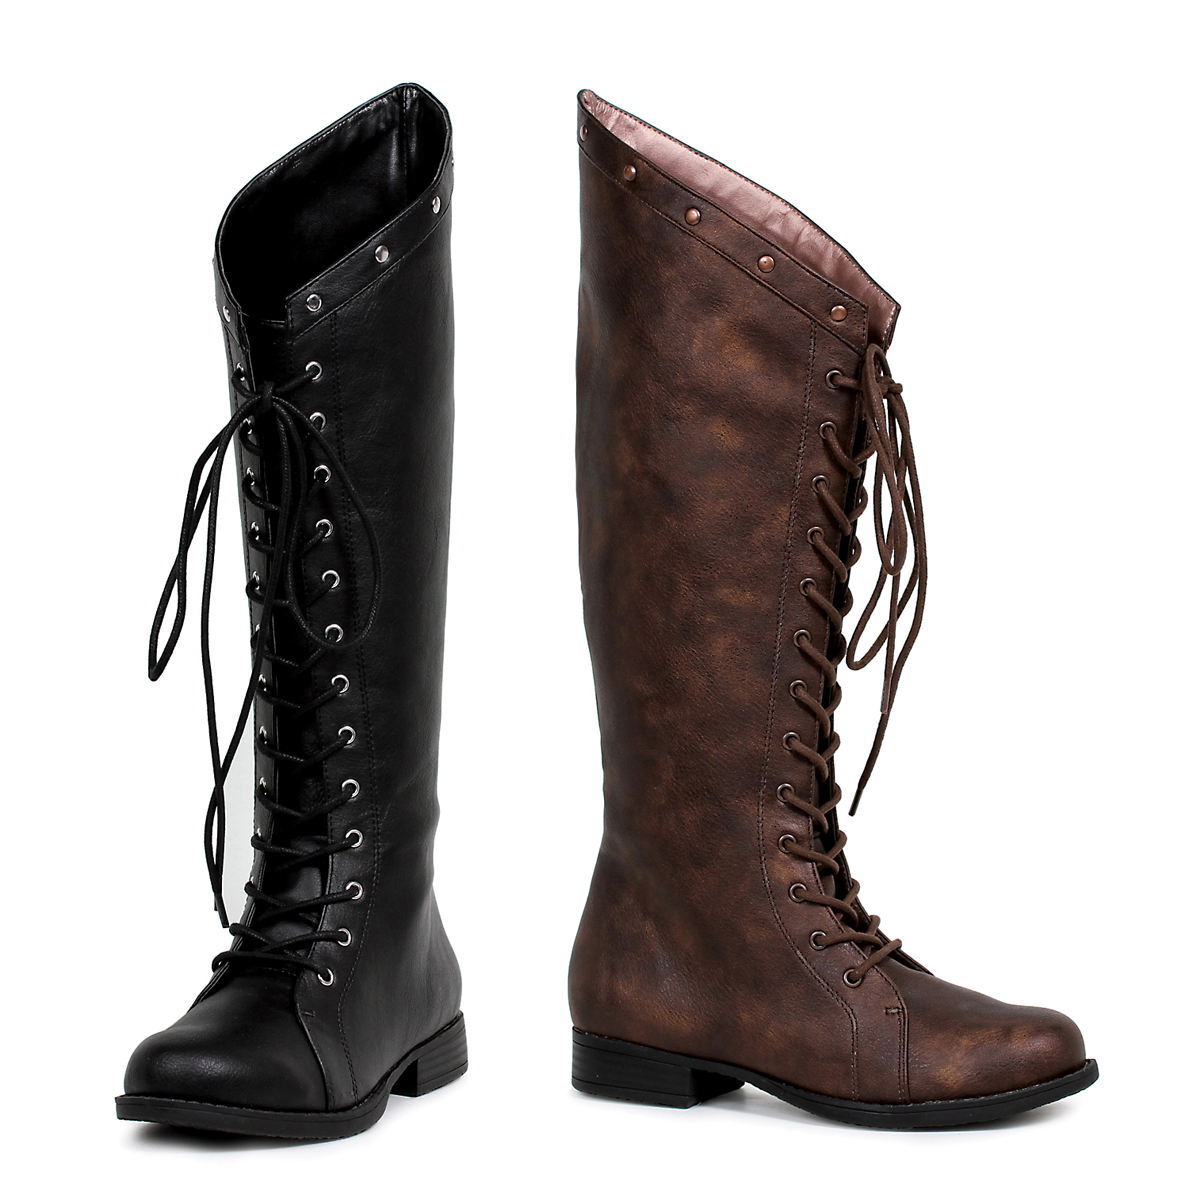 934d06b9cfe Knee High Lace Up Huntress Boots